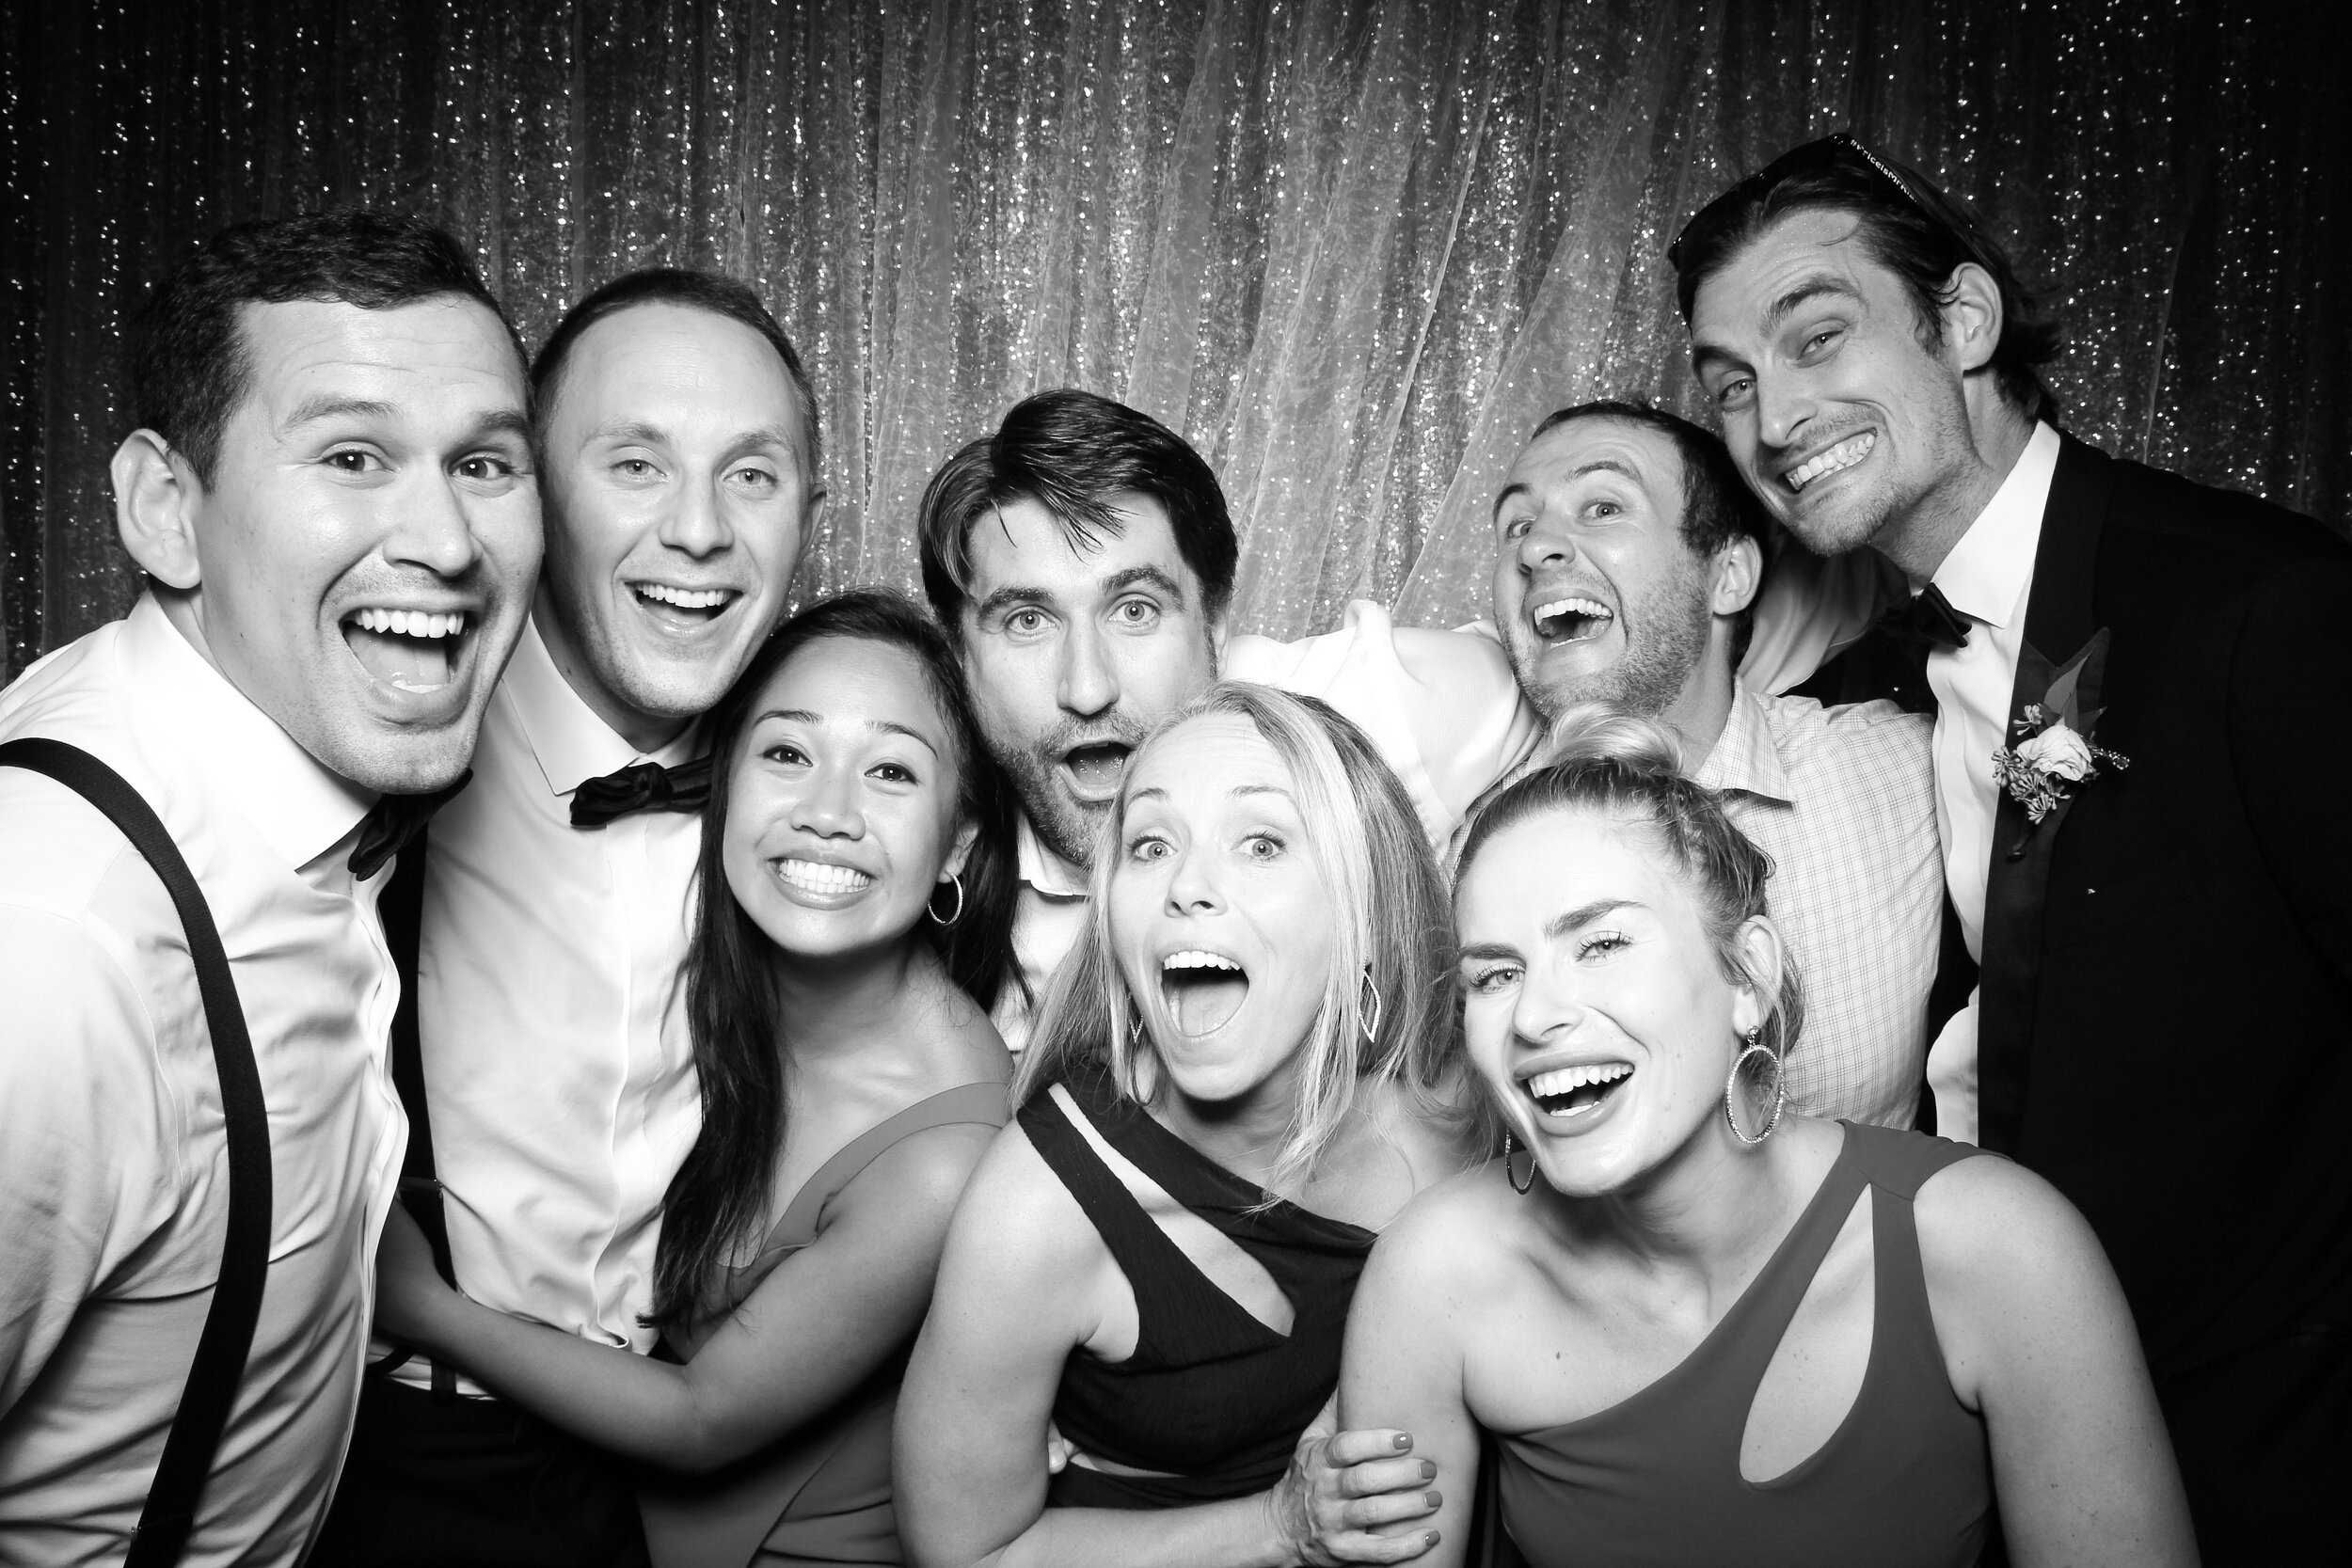 Chicago_Vintage_Wedding_Photobooth_Country_Club_19.jpg